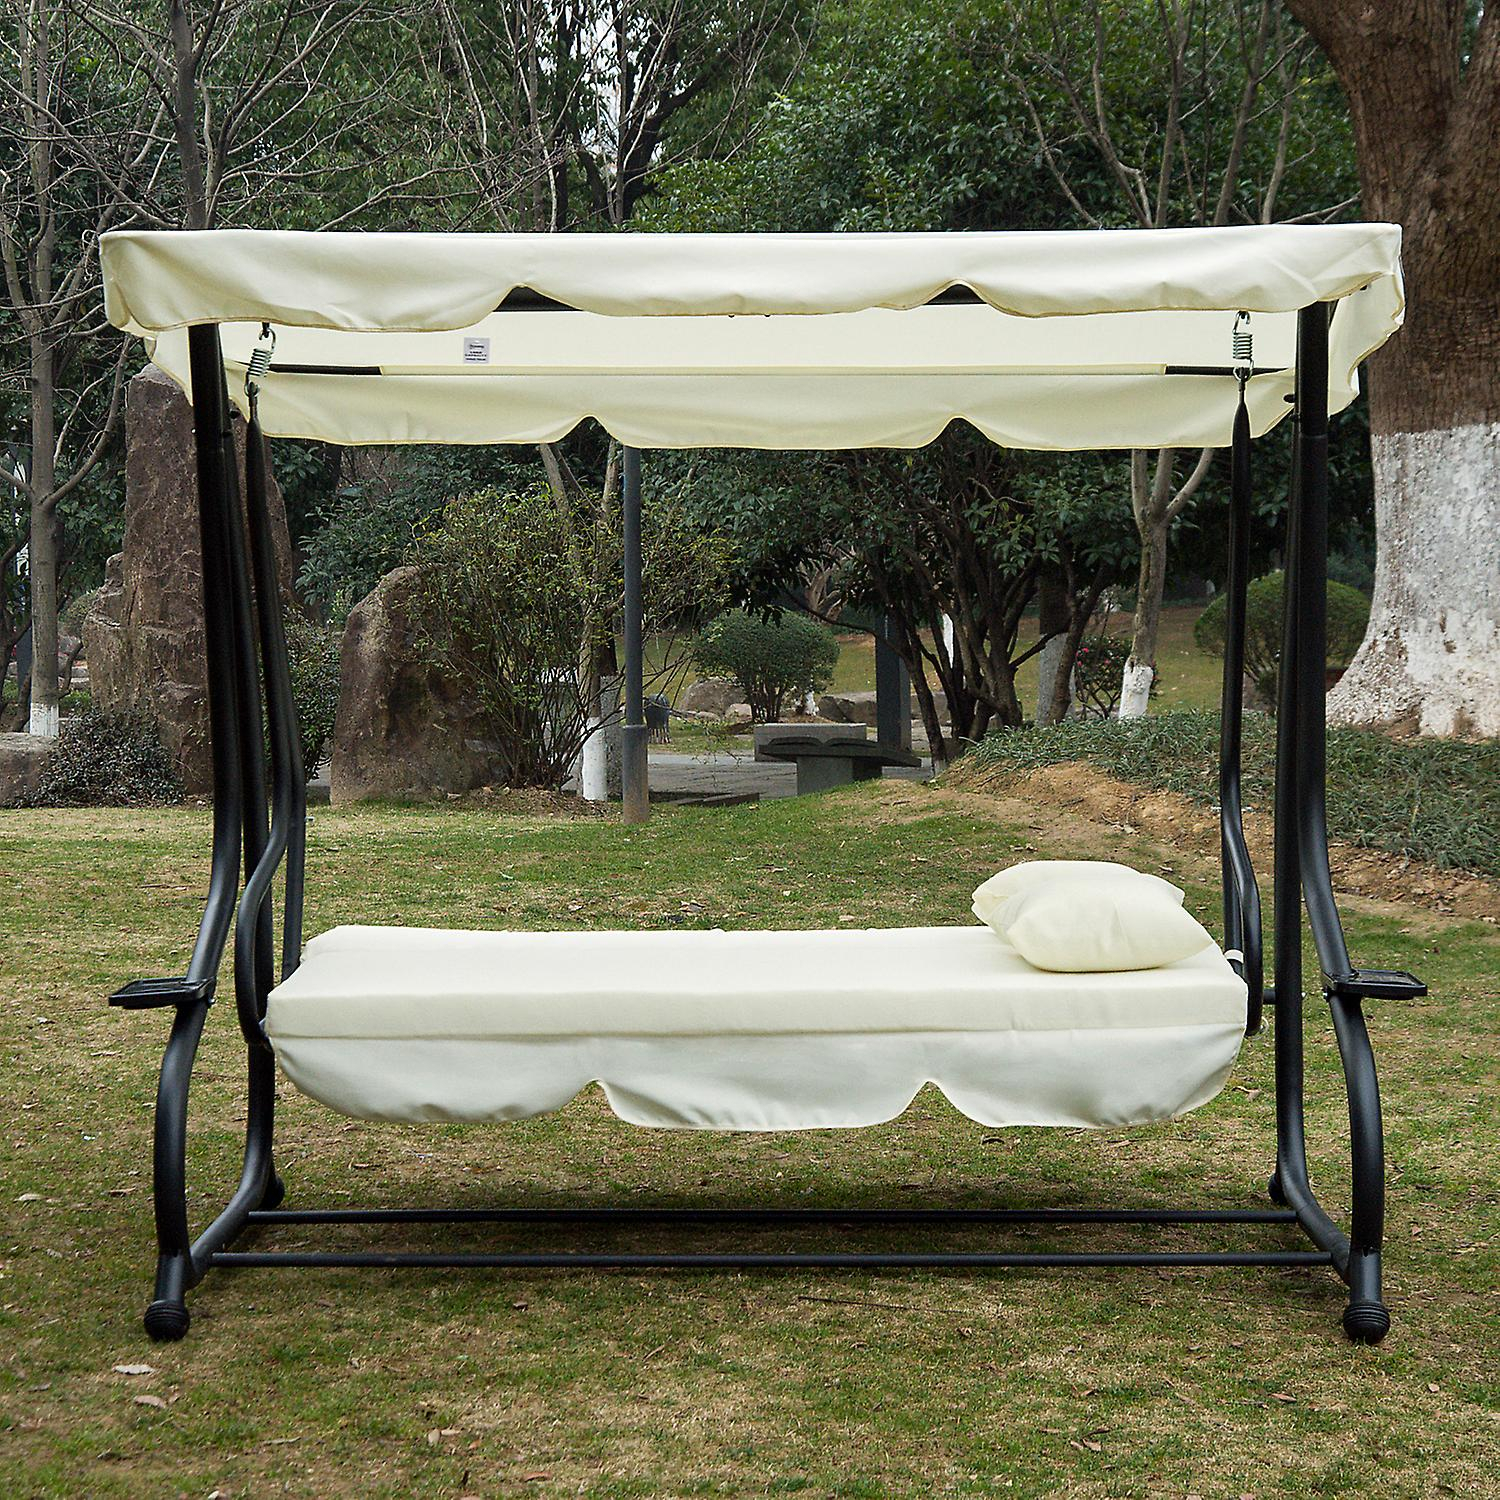 Outsunny 2 In 1 Patio Swing Chair 3 Seater Hammock Cushion Bed Tilt Canopy Garden Lounger Bench Pertaining To 3 Seat Pergola Swings (View 20 of 25)